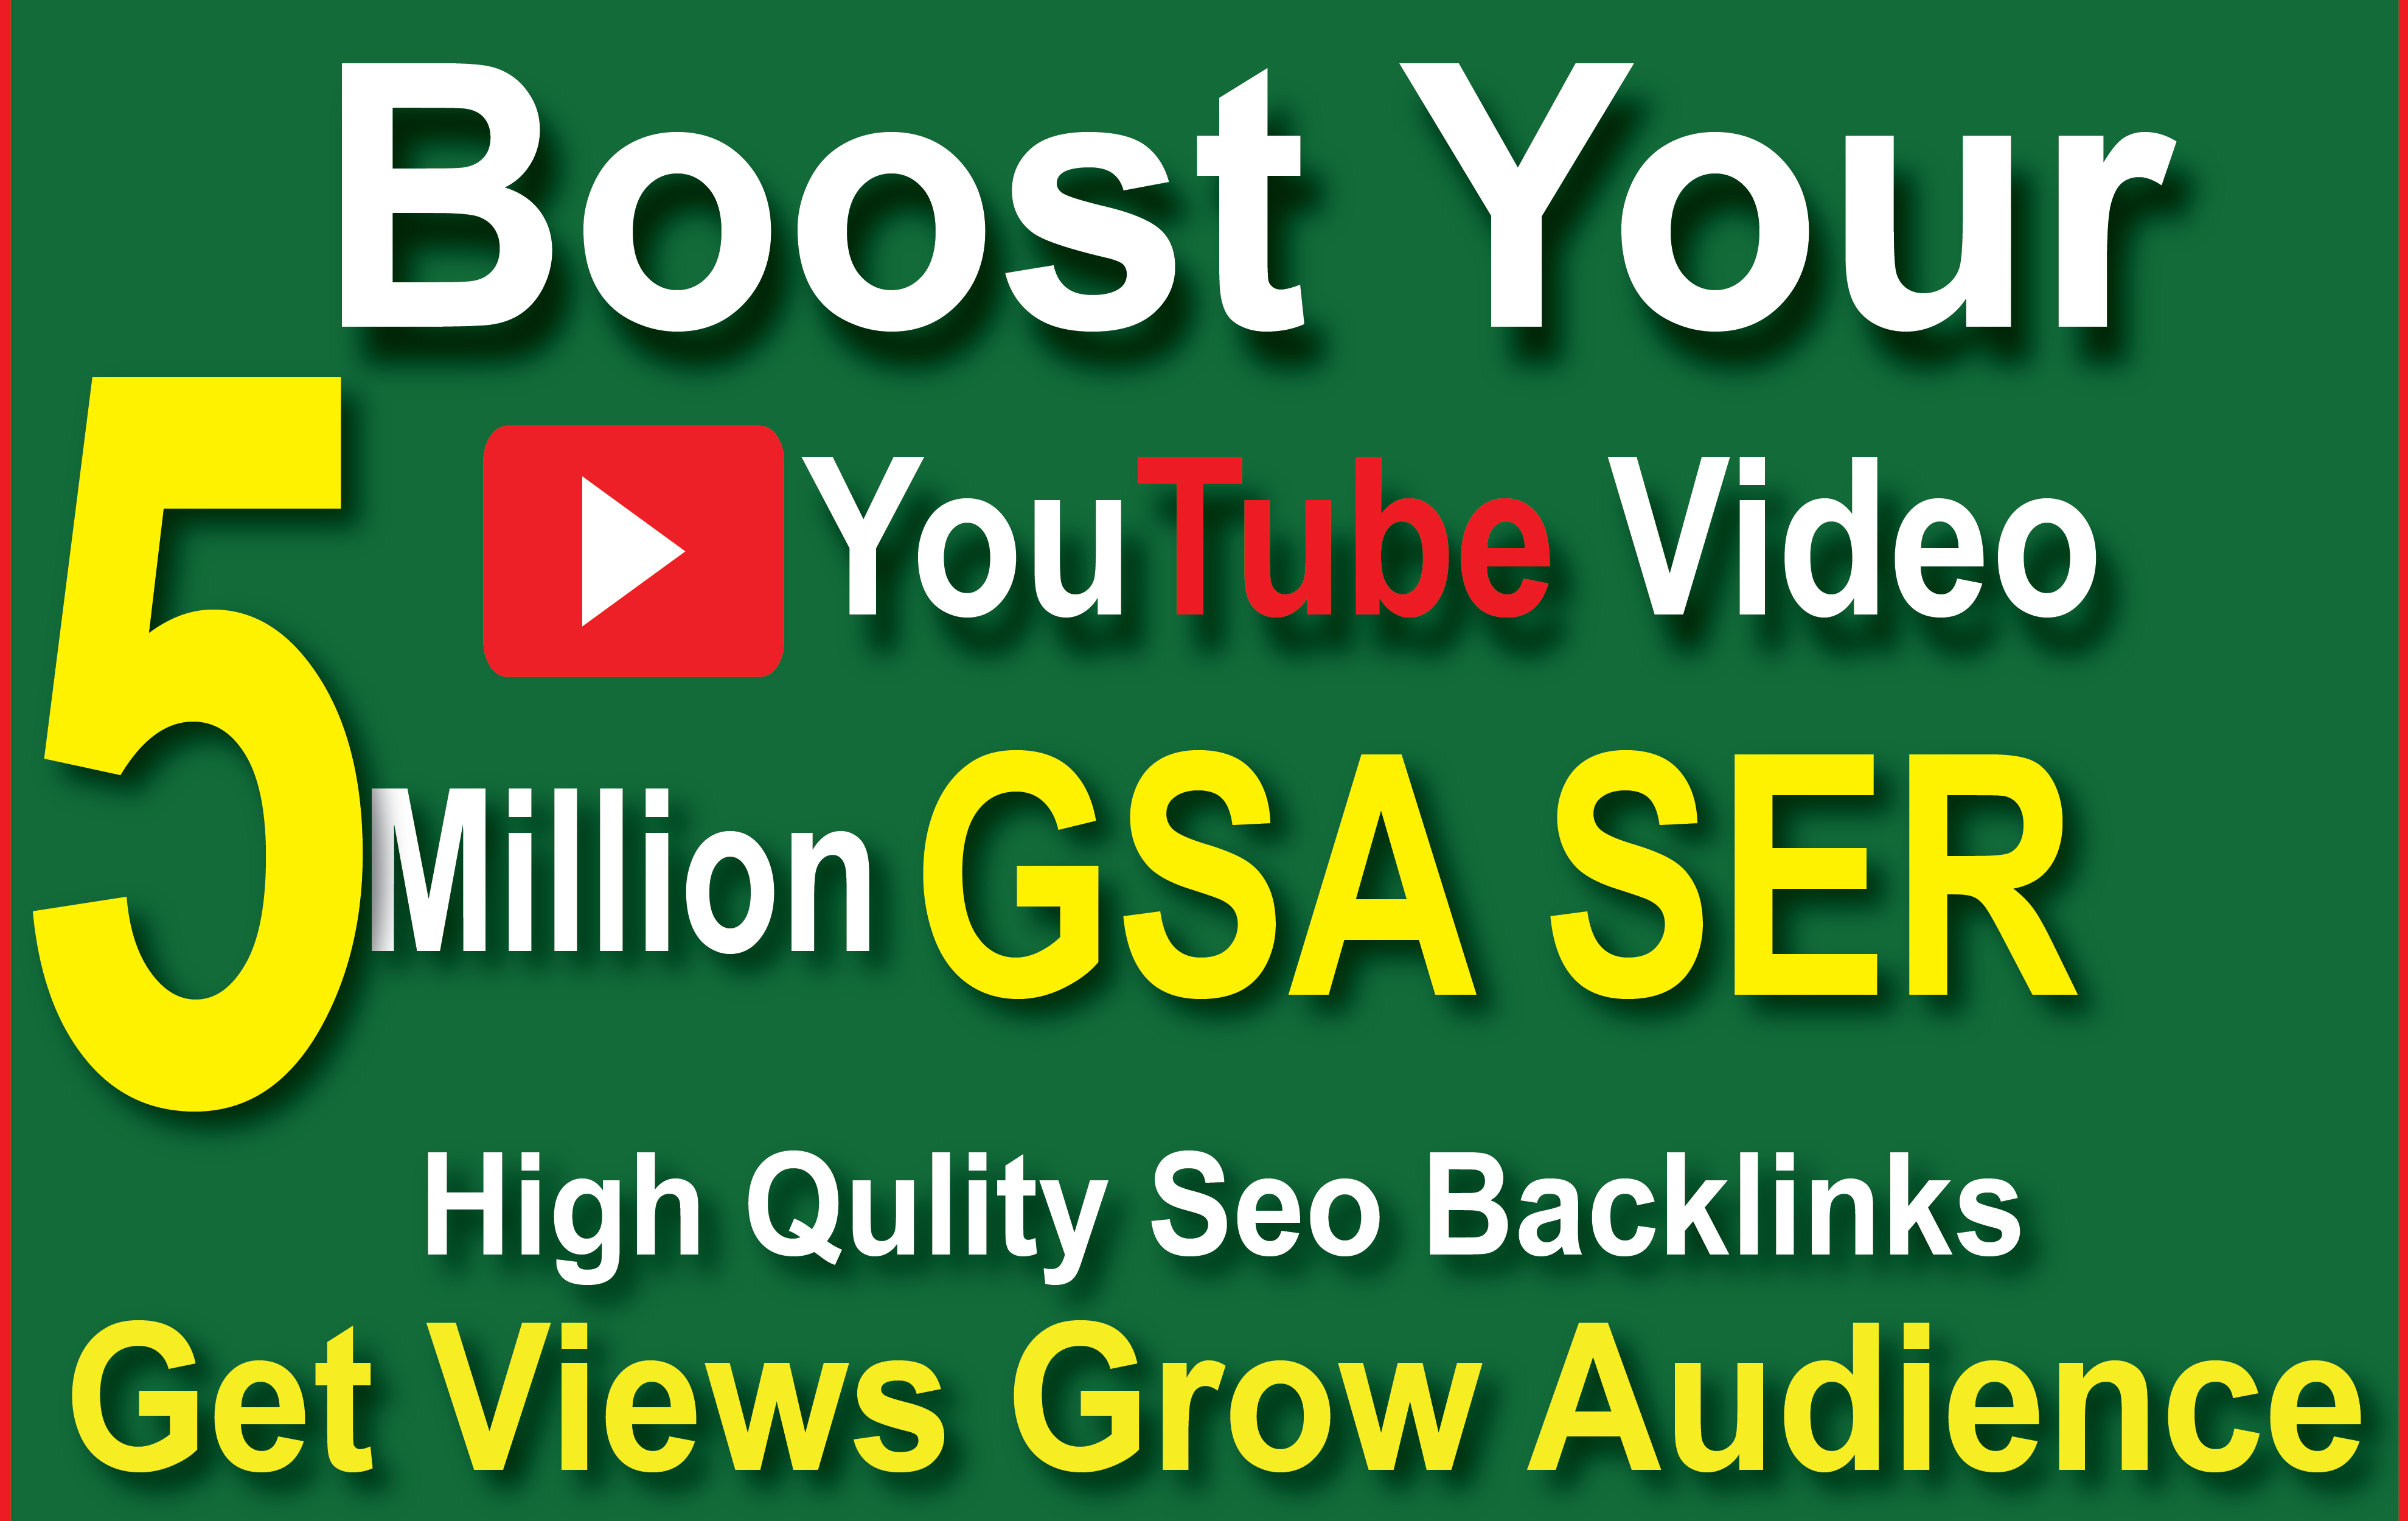 I will boost your YouTube video with gsa ser seo backlinks for grow audience